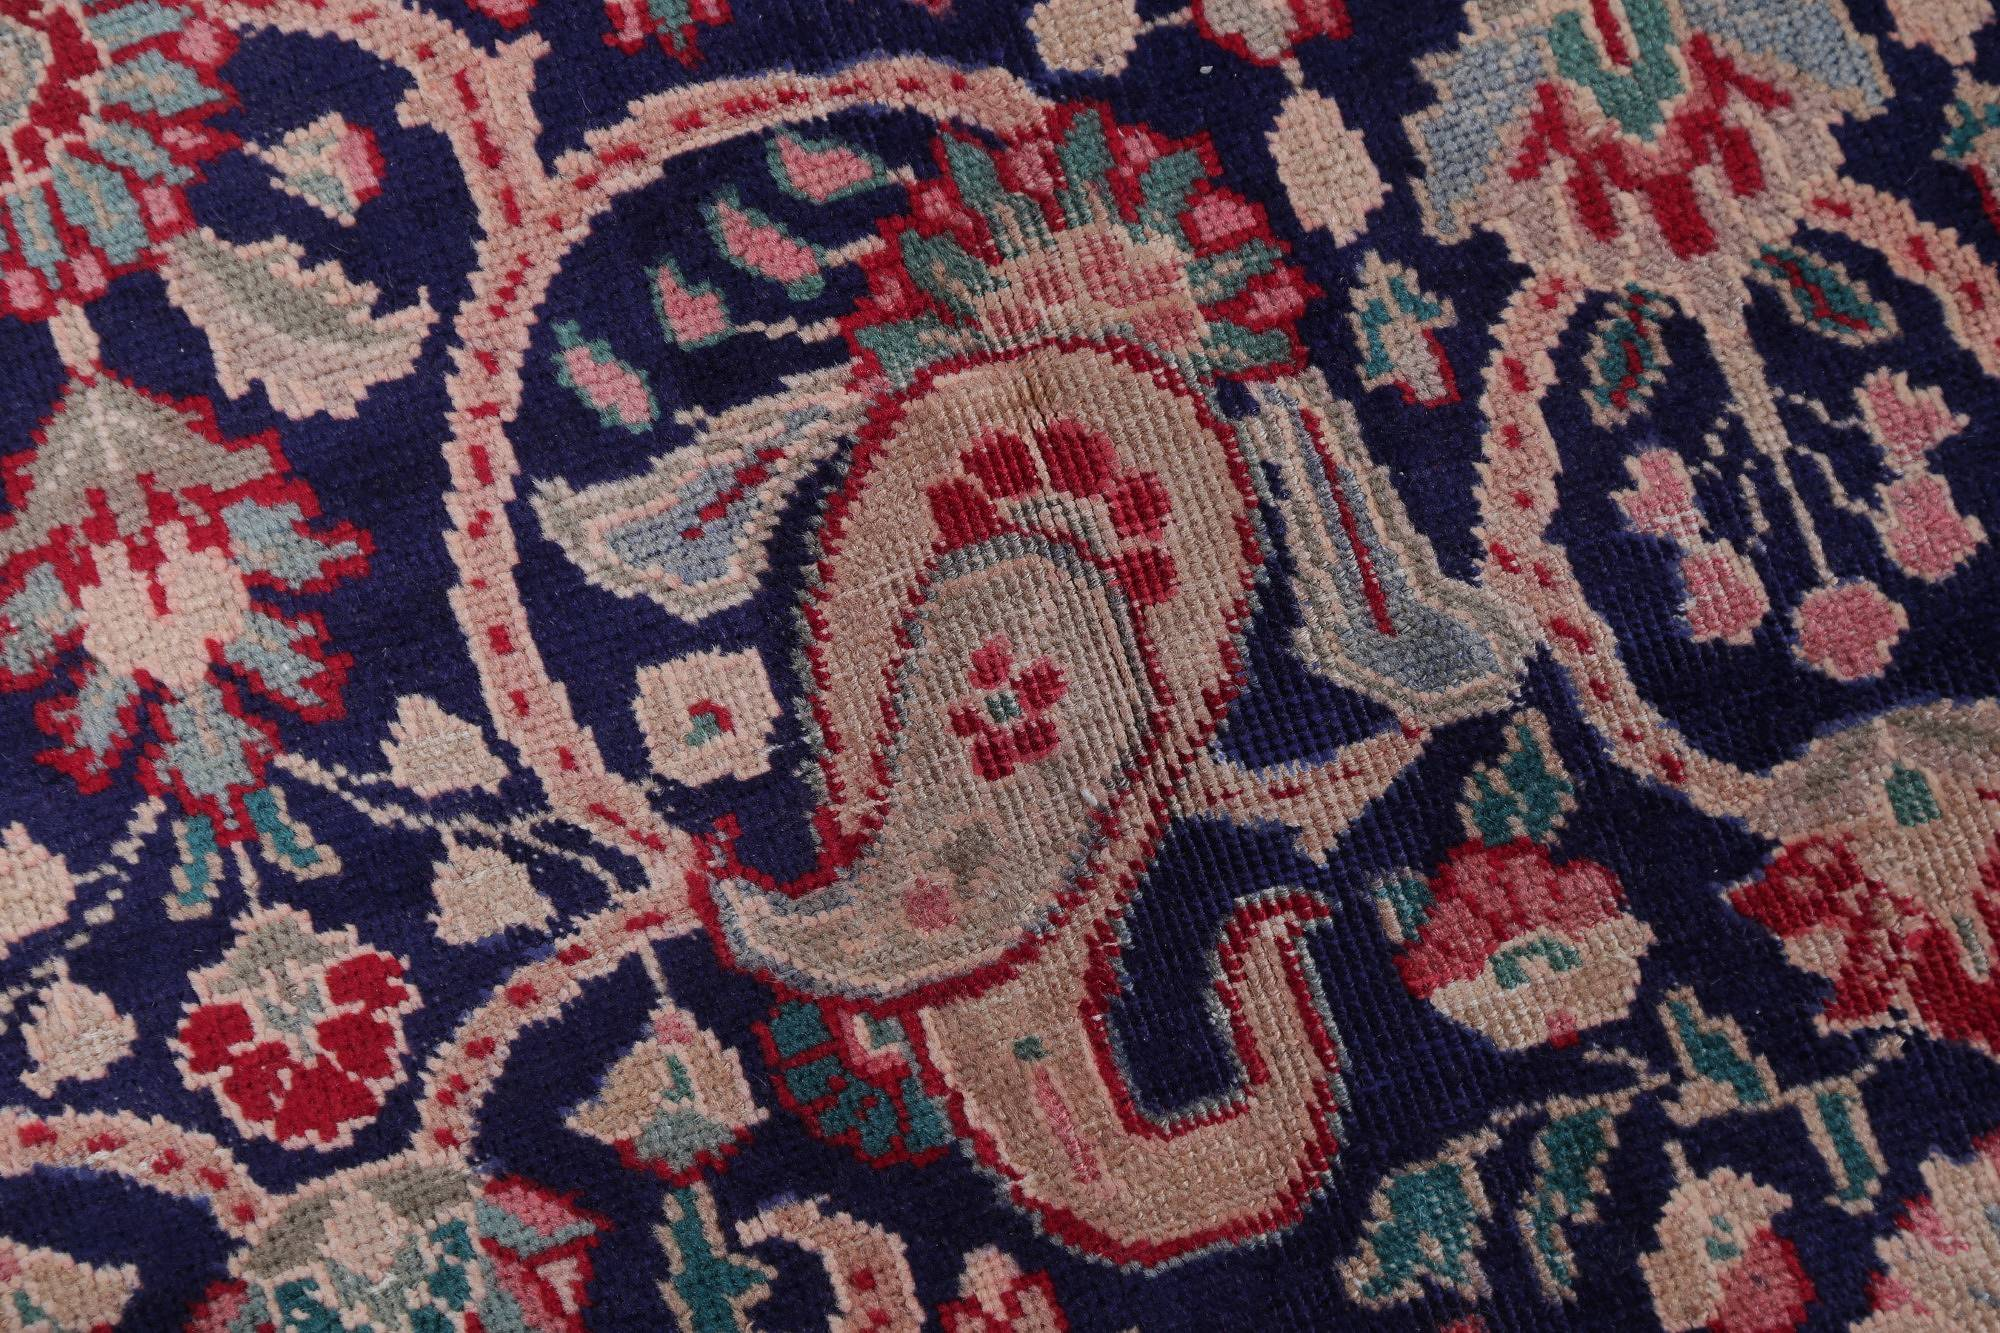 Paisley Blue Geometric Tabriz Persian Hand-Knotted 10x13 Wool Area Rug